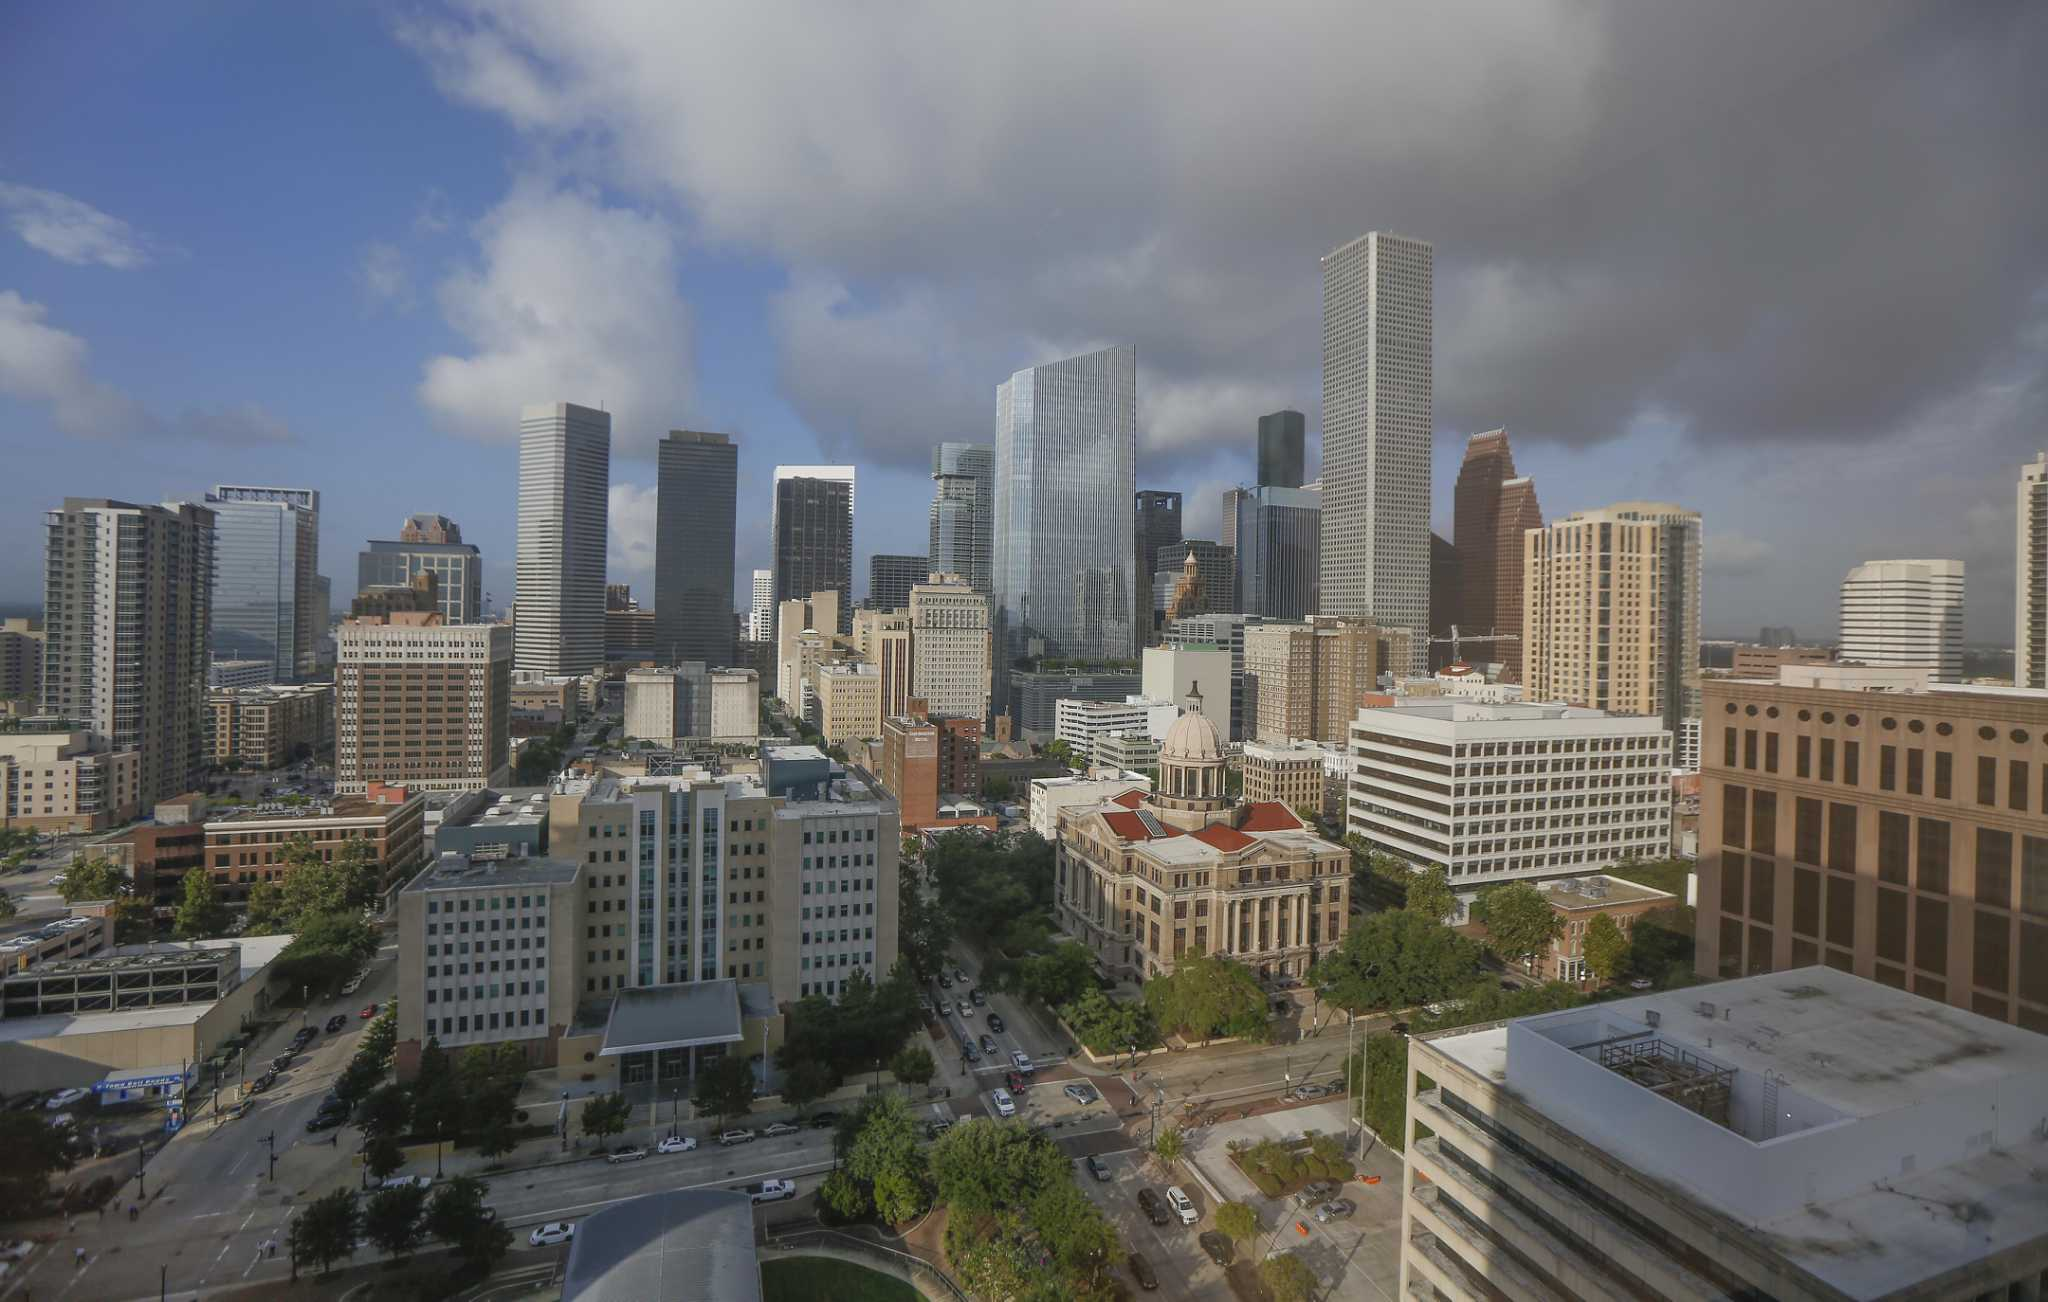 Houston is the 7th 'most diverse' city in the US: report